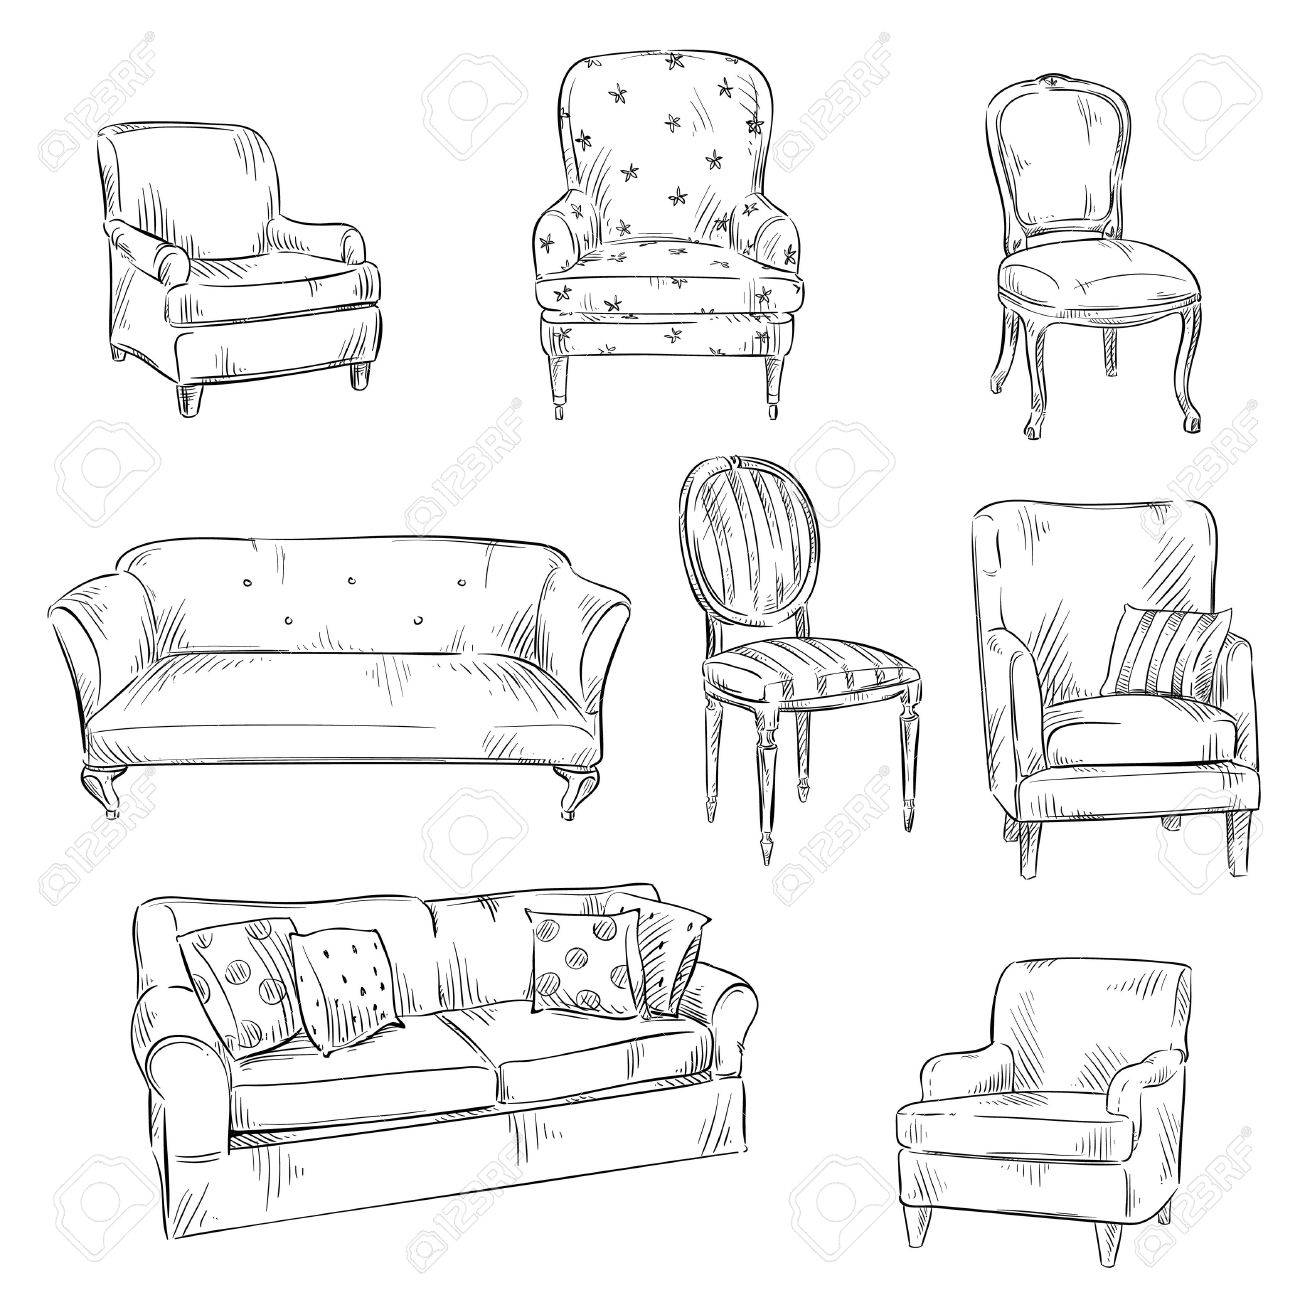 set of hand drawn chairs and sofas, vector illustration - 50057548